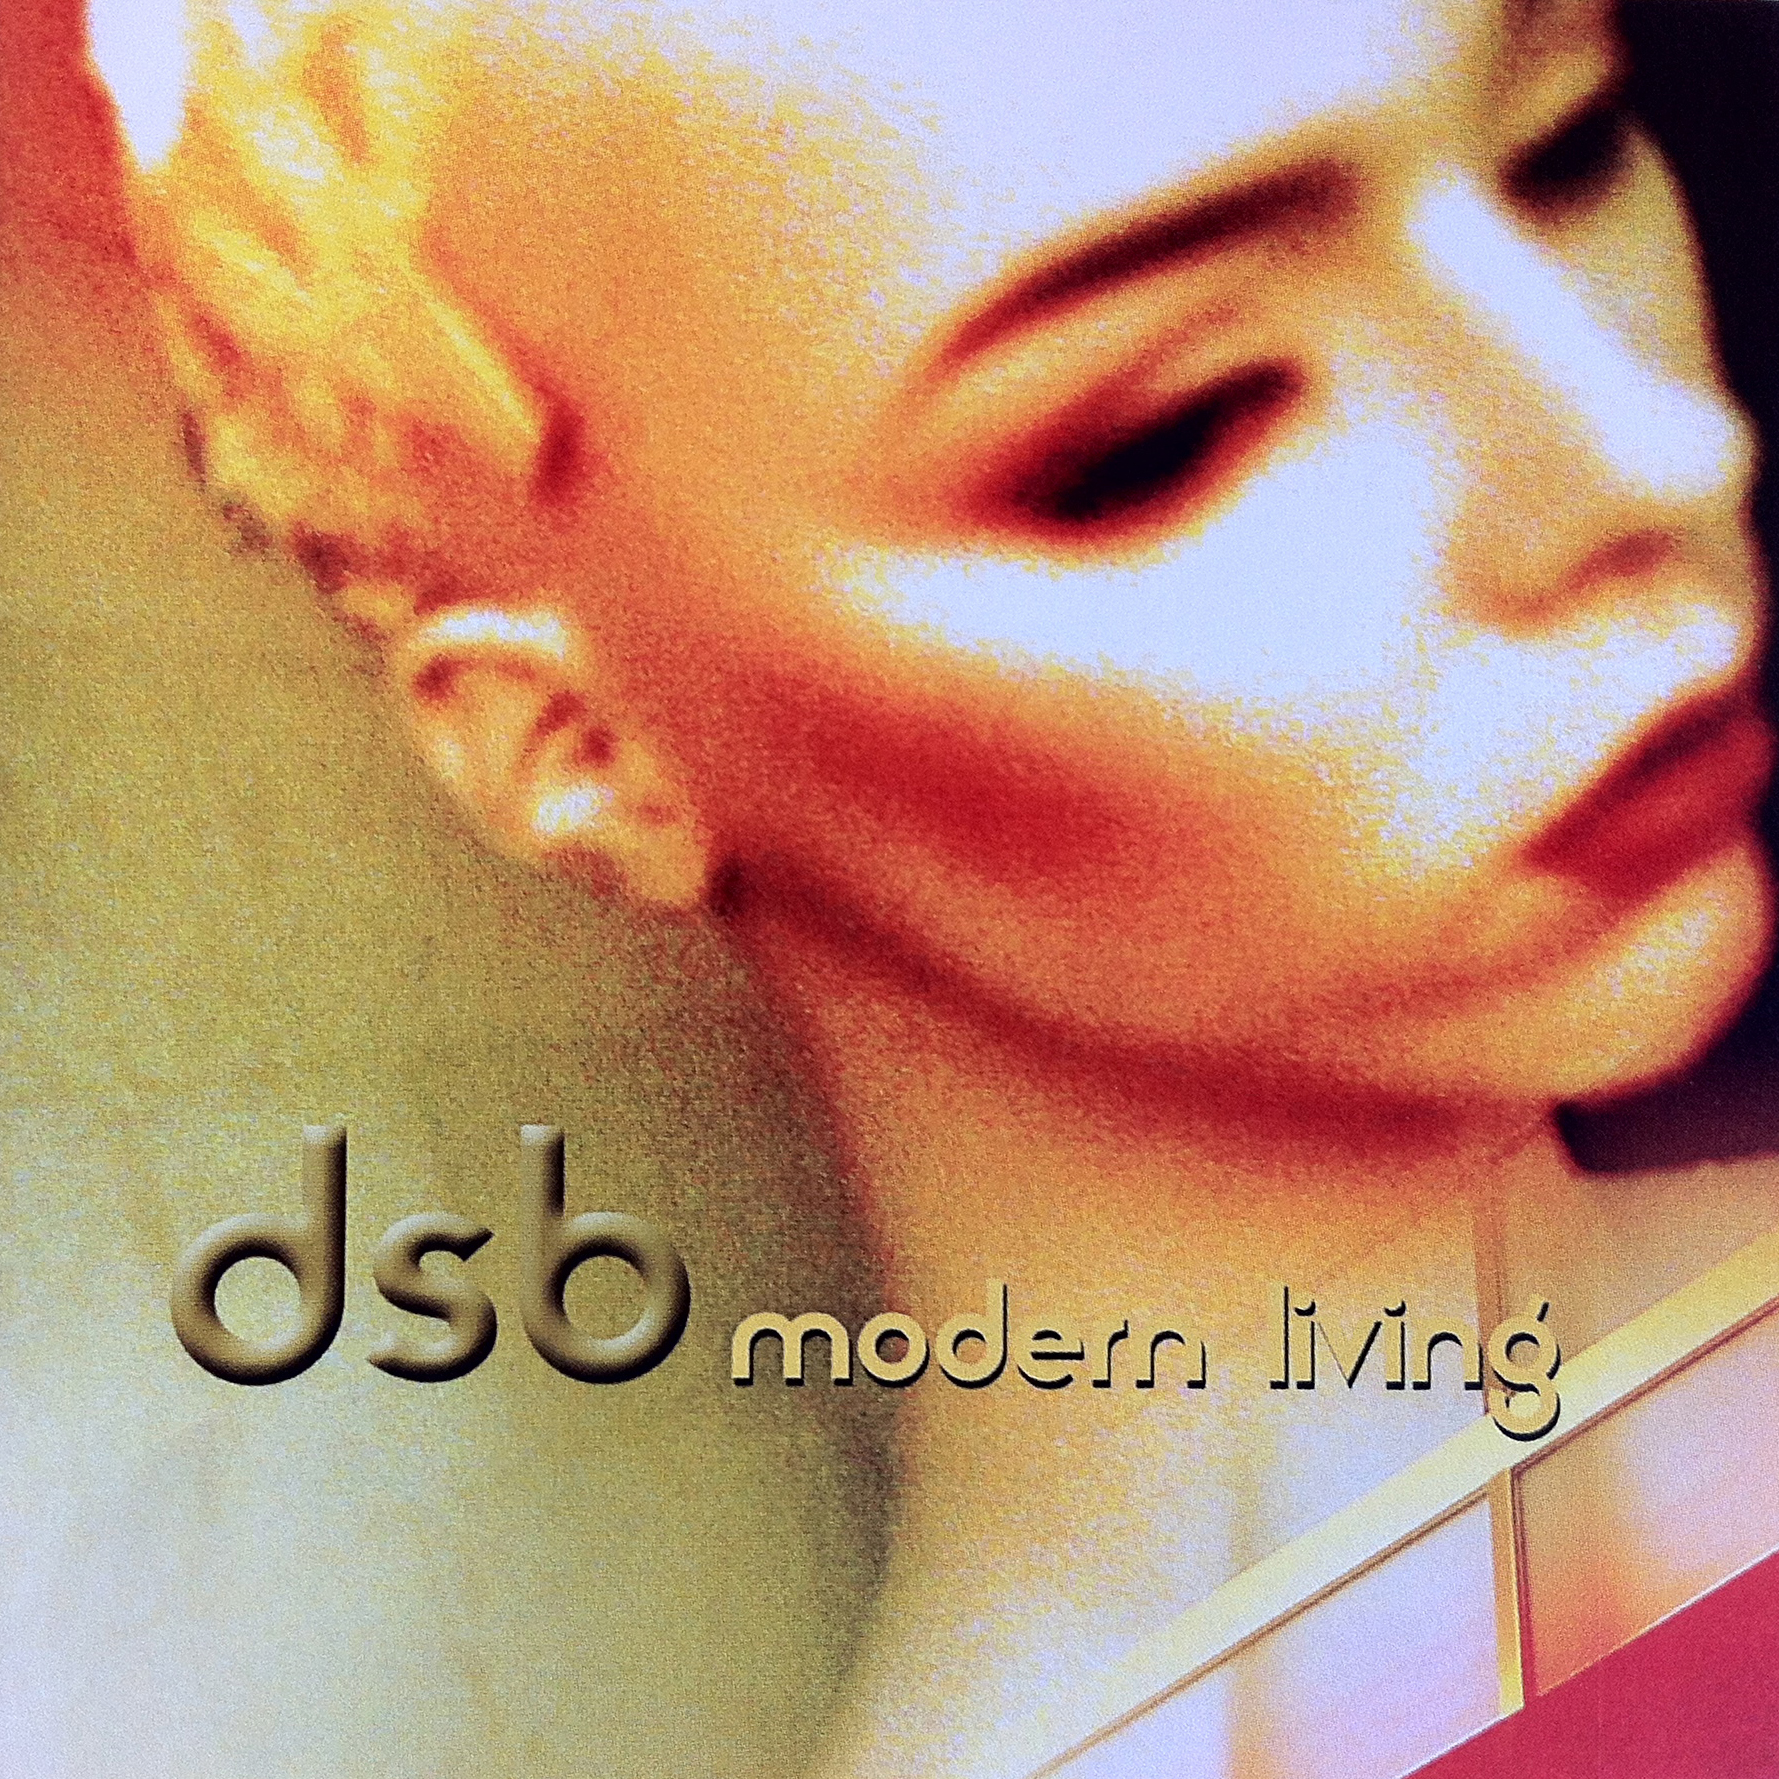 dsb_cover